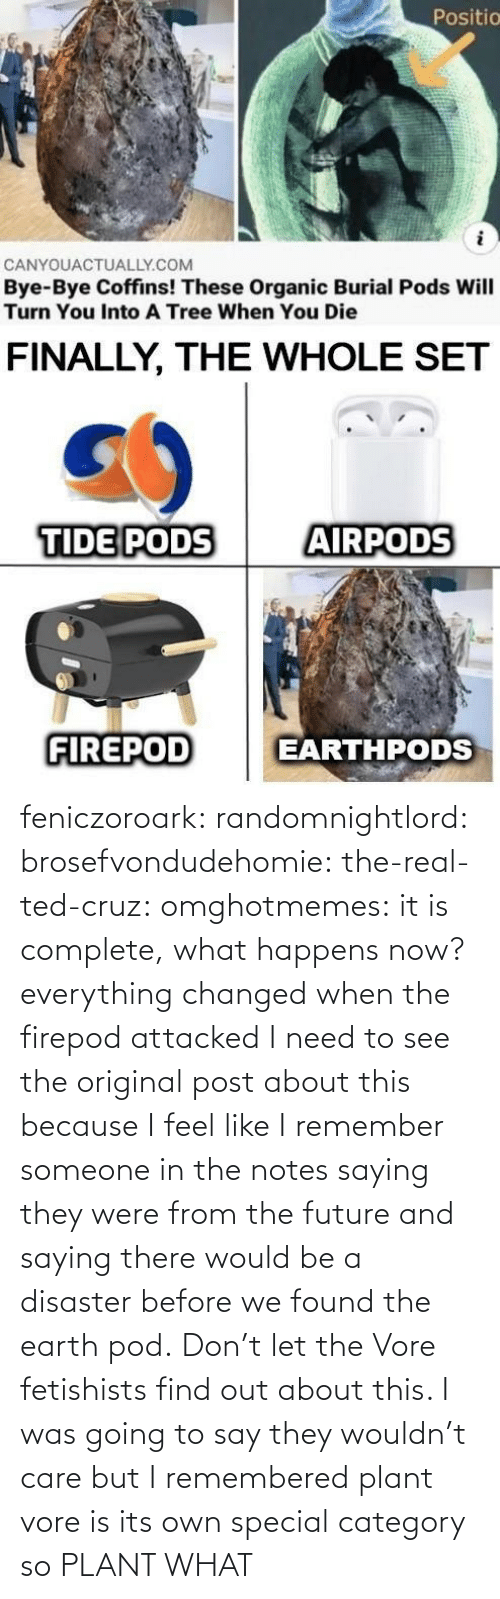 Would Be: feniczoroark:  randomnightlord:  brosefvondudehomie: the-real-ted-cruz:  omghotmemes: it is complete, what happens now? everything changed when the firepod attacked    I need to see the original post about this because I feel like I remember someone in the notes saying they were from the future and saying there would be a disaster before we found the earth pod.    Don't let the Vore fetishists find out about this.    I was going to say they wouldn't care but I remembered plant vore is its own special category so   PLANT WHAT